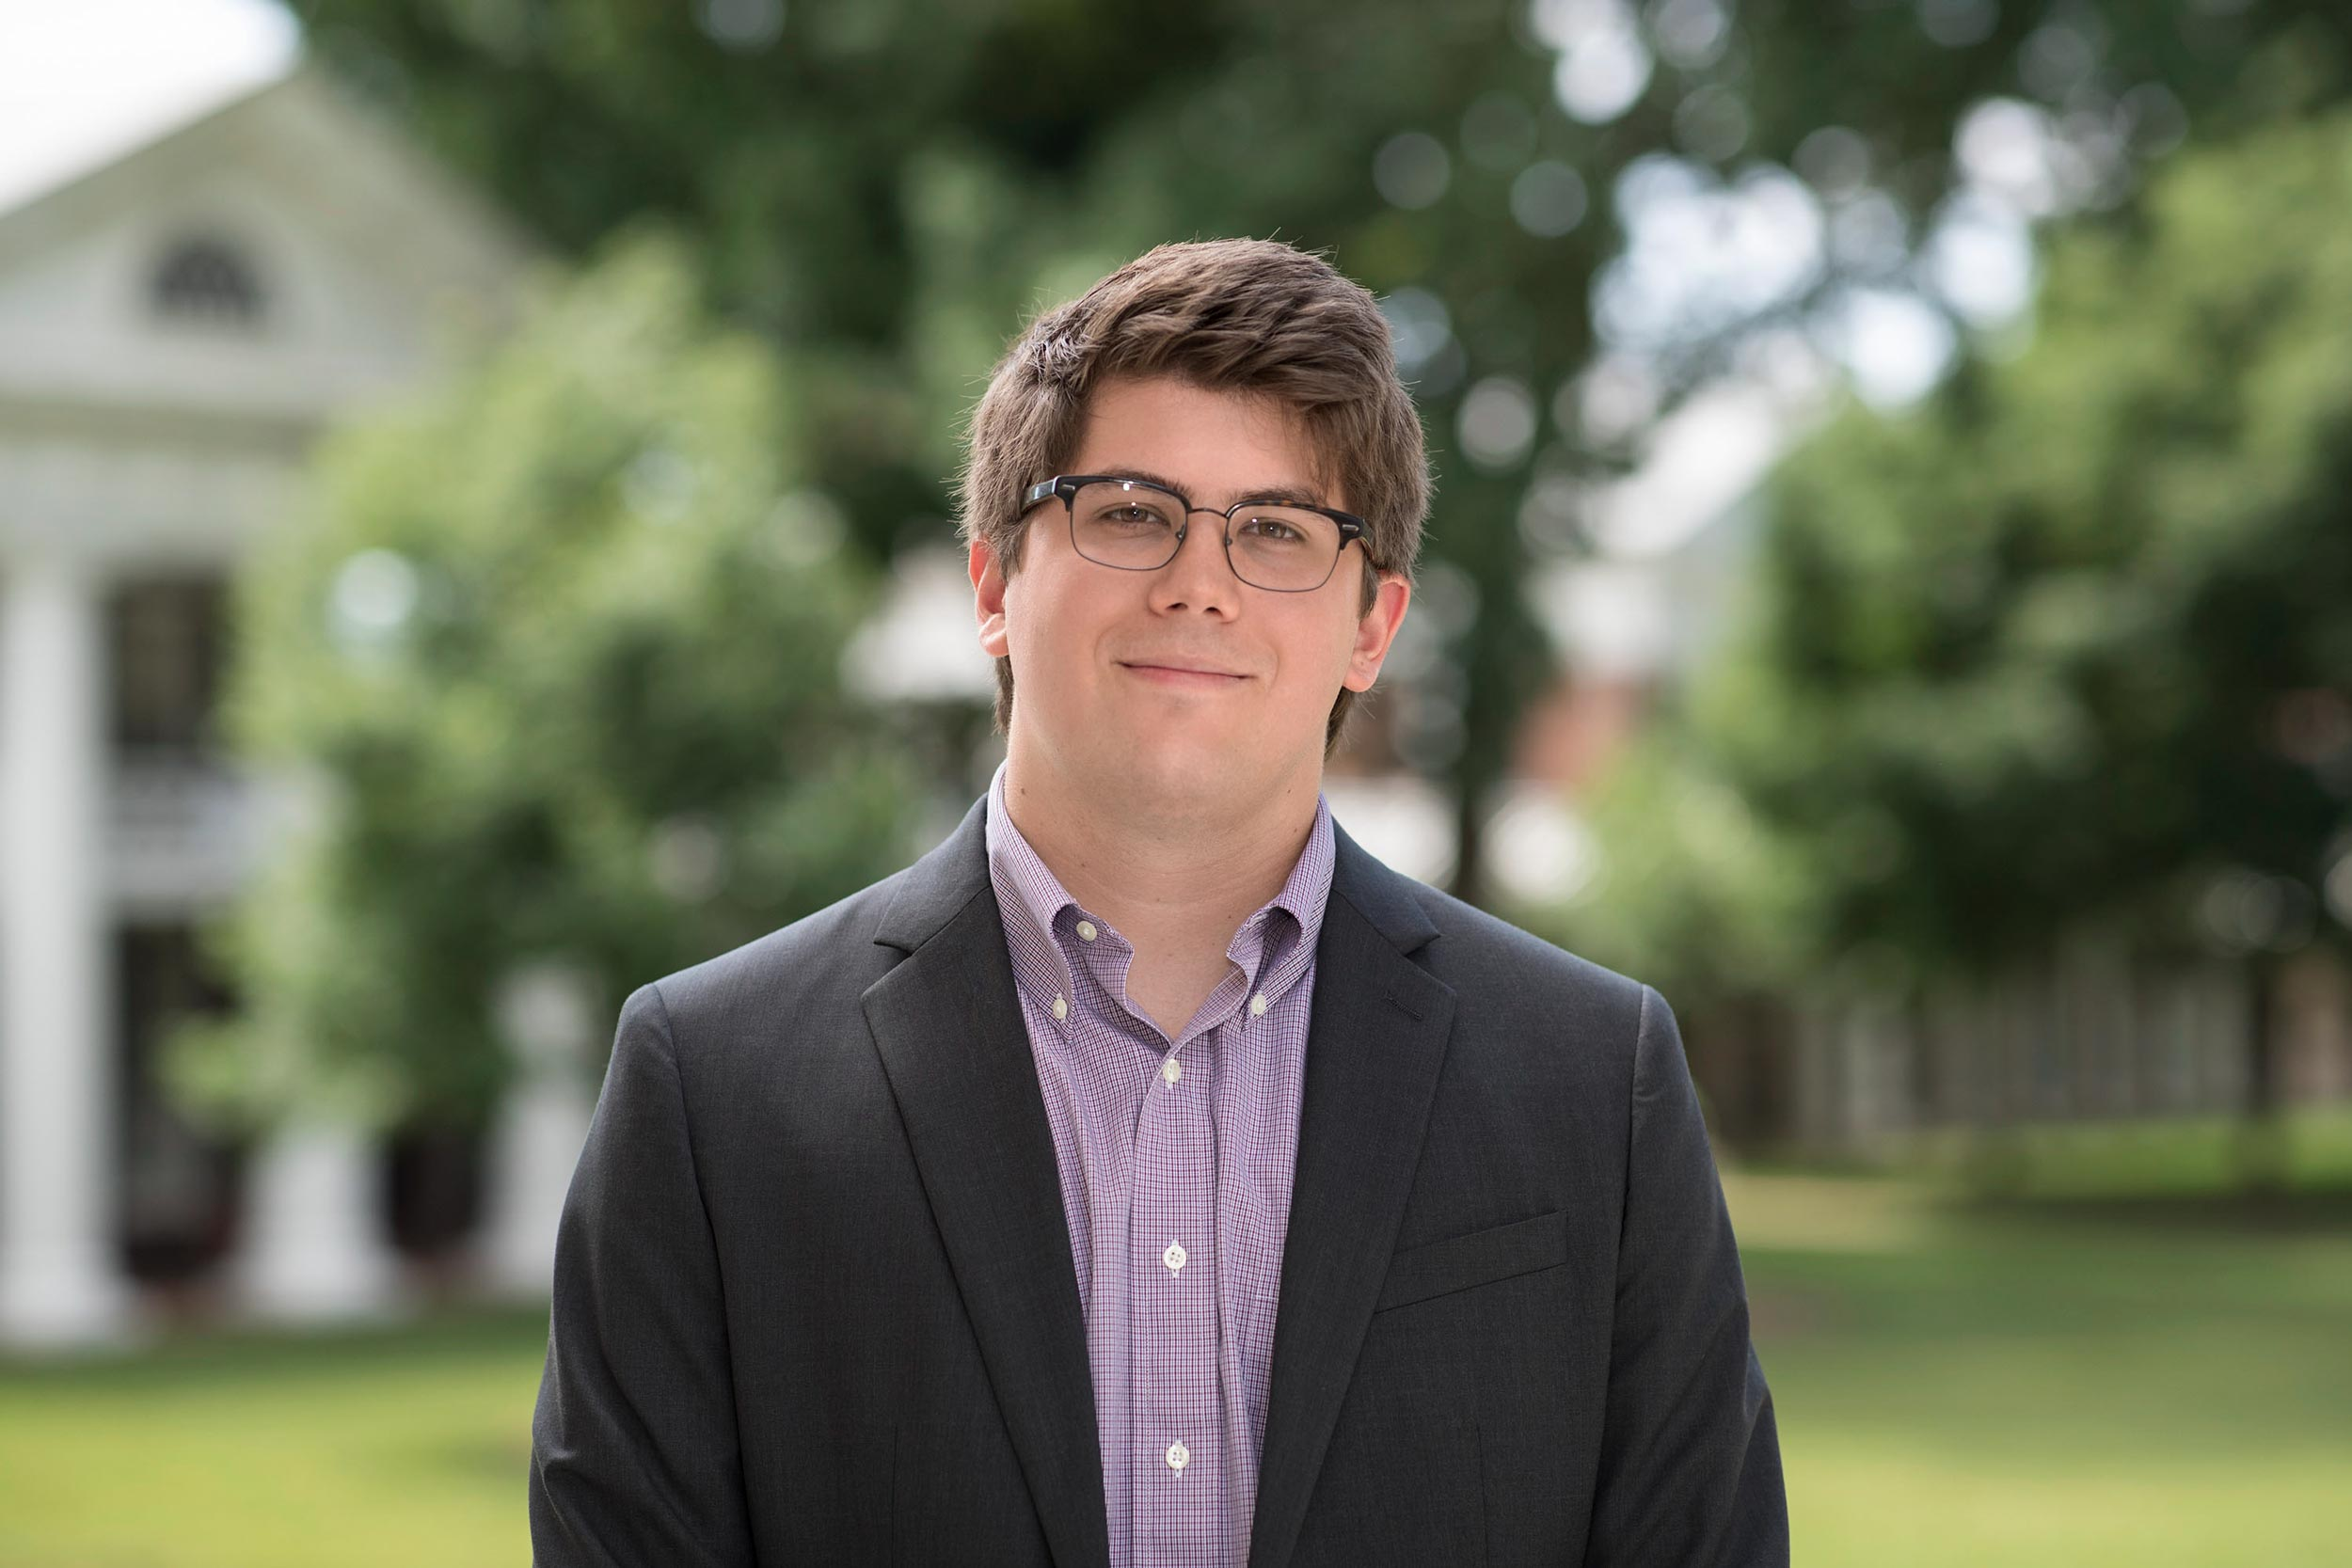 Sam Lesemann graduated with bachelor's degrees in history and psychology from the College of Arts & Sciences and is pursuing a Master of Public Policy degree at the Frank Batten School of Leadership and Public Policy.